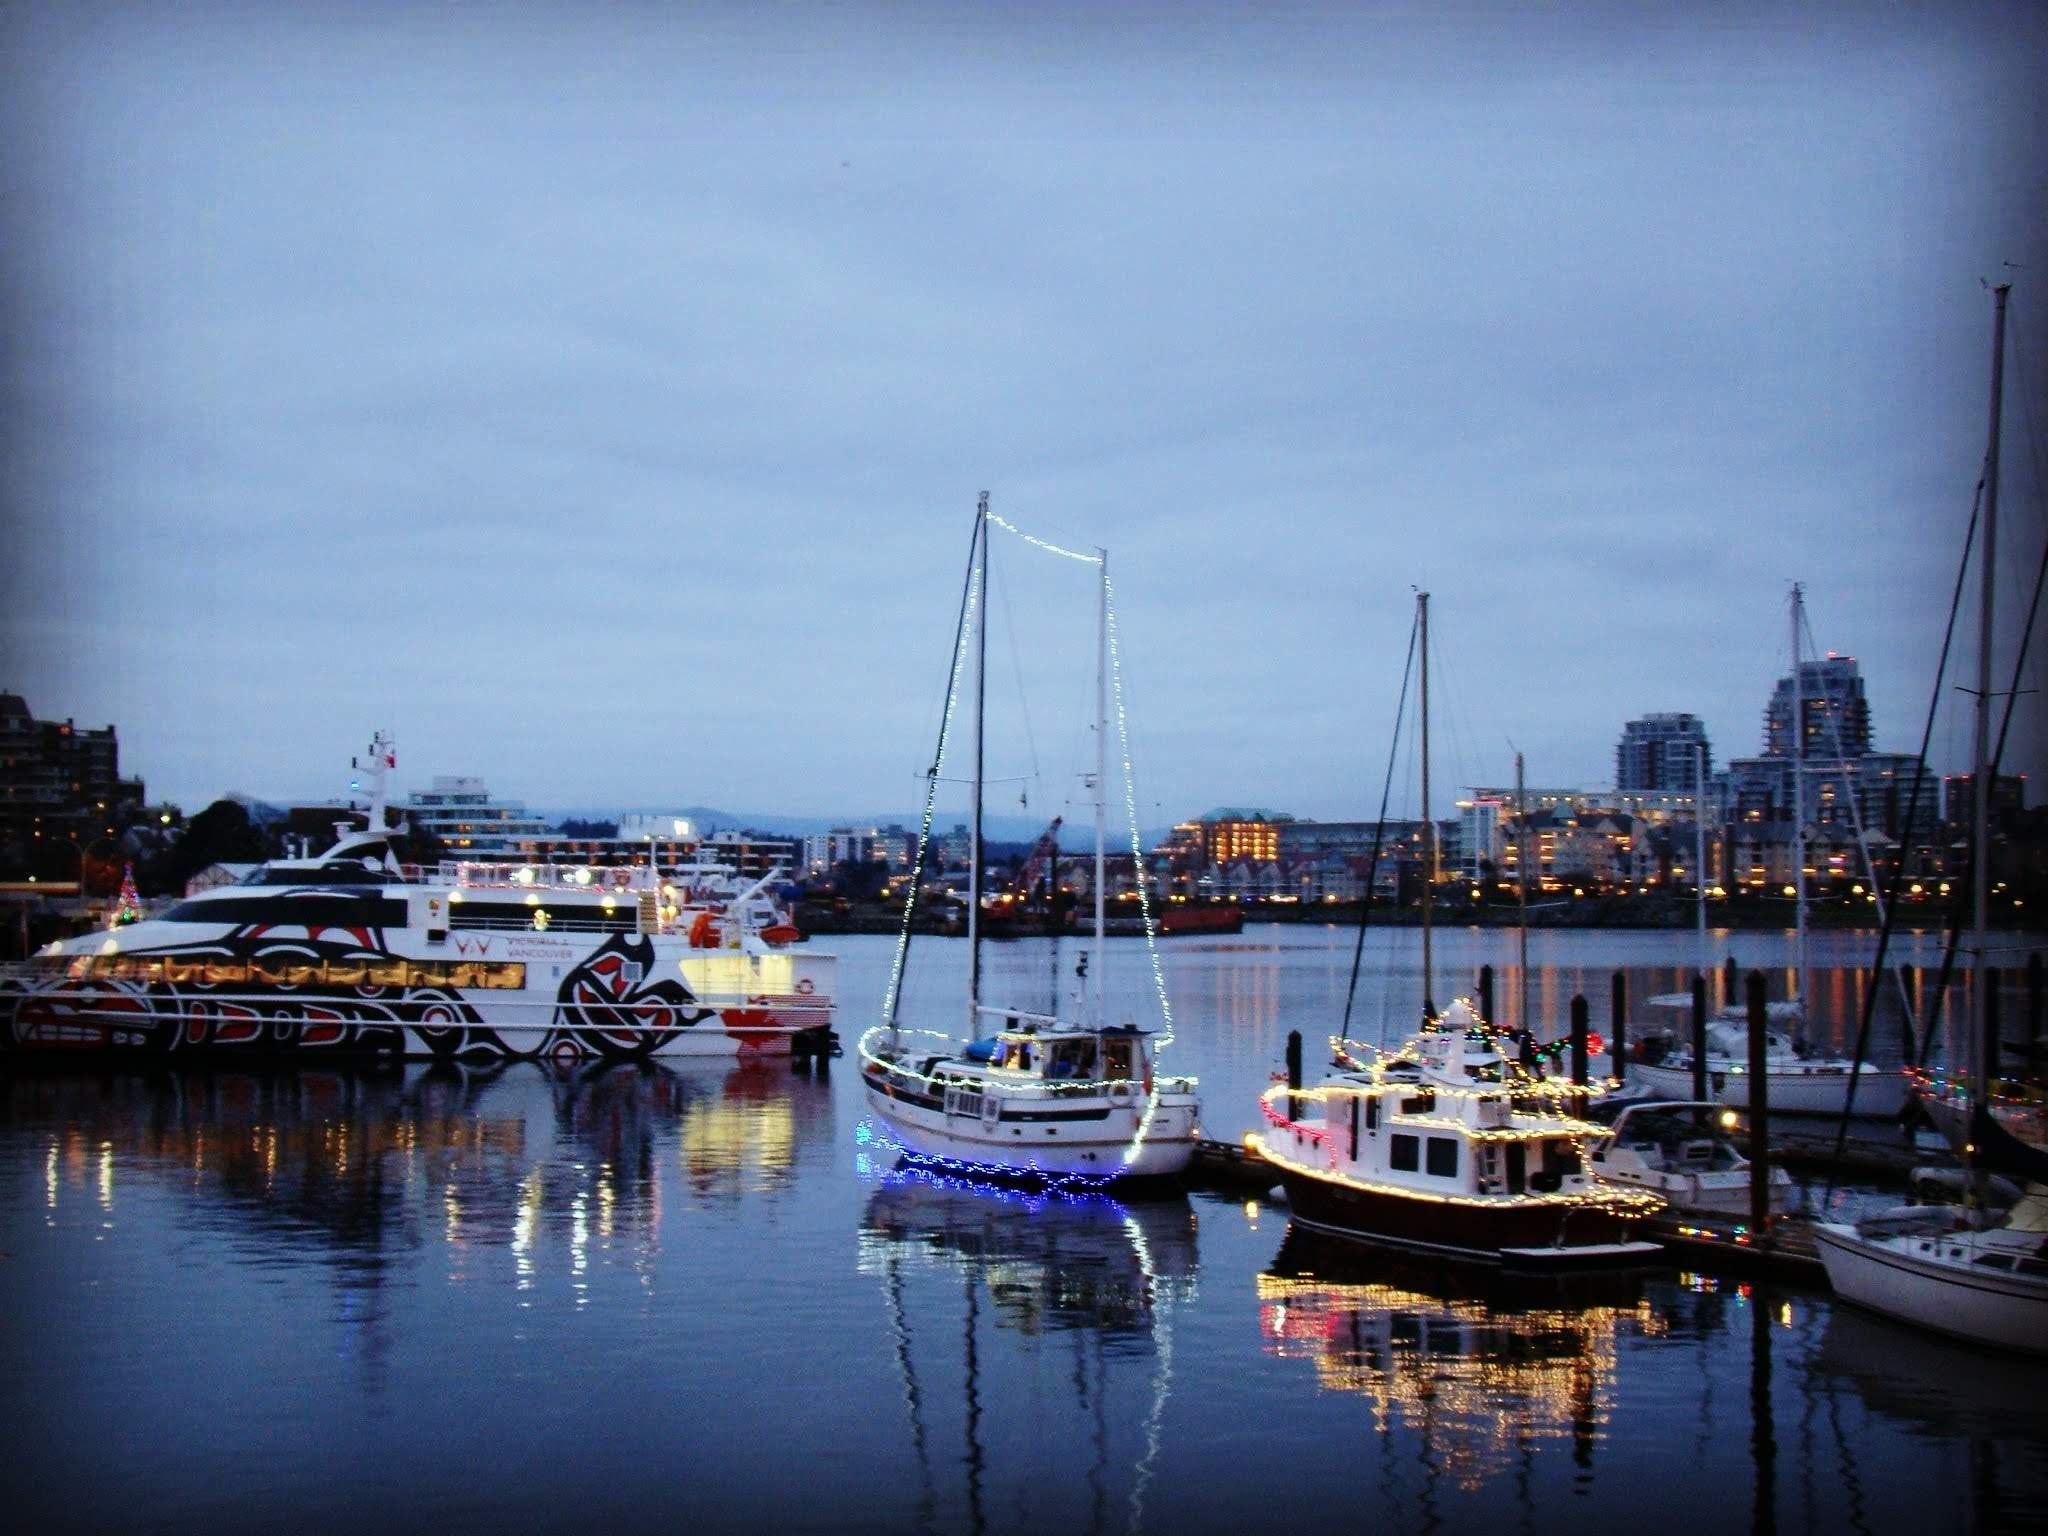 Twilight reflections in Victoria's Inner Harbour